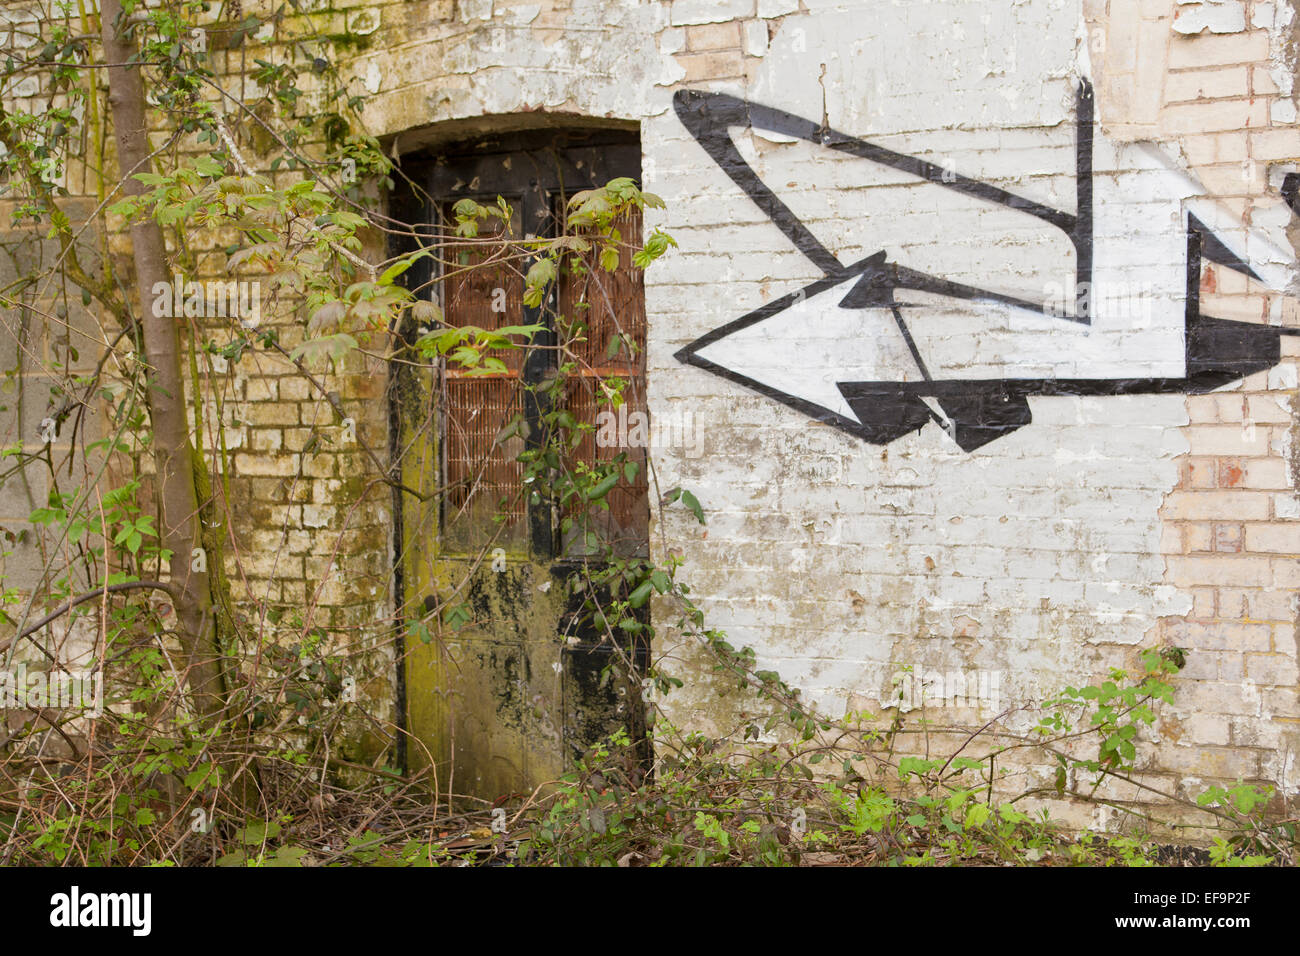 Graffiti Old water Mill East Sussex - Stock Image